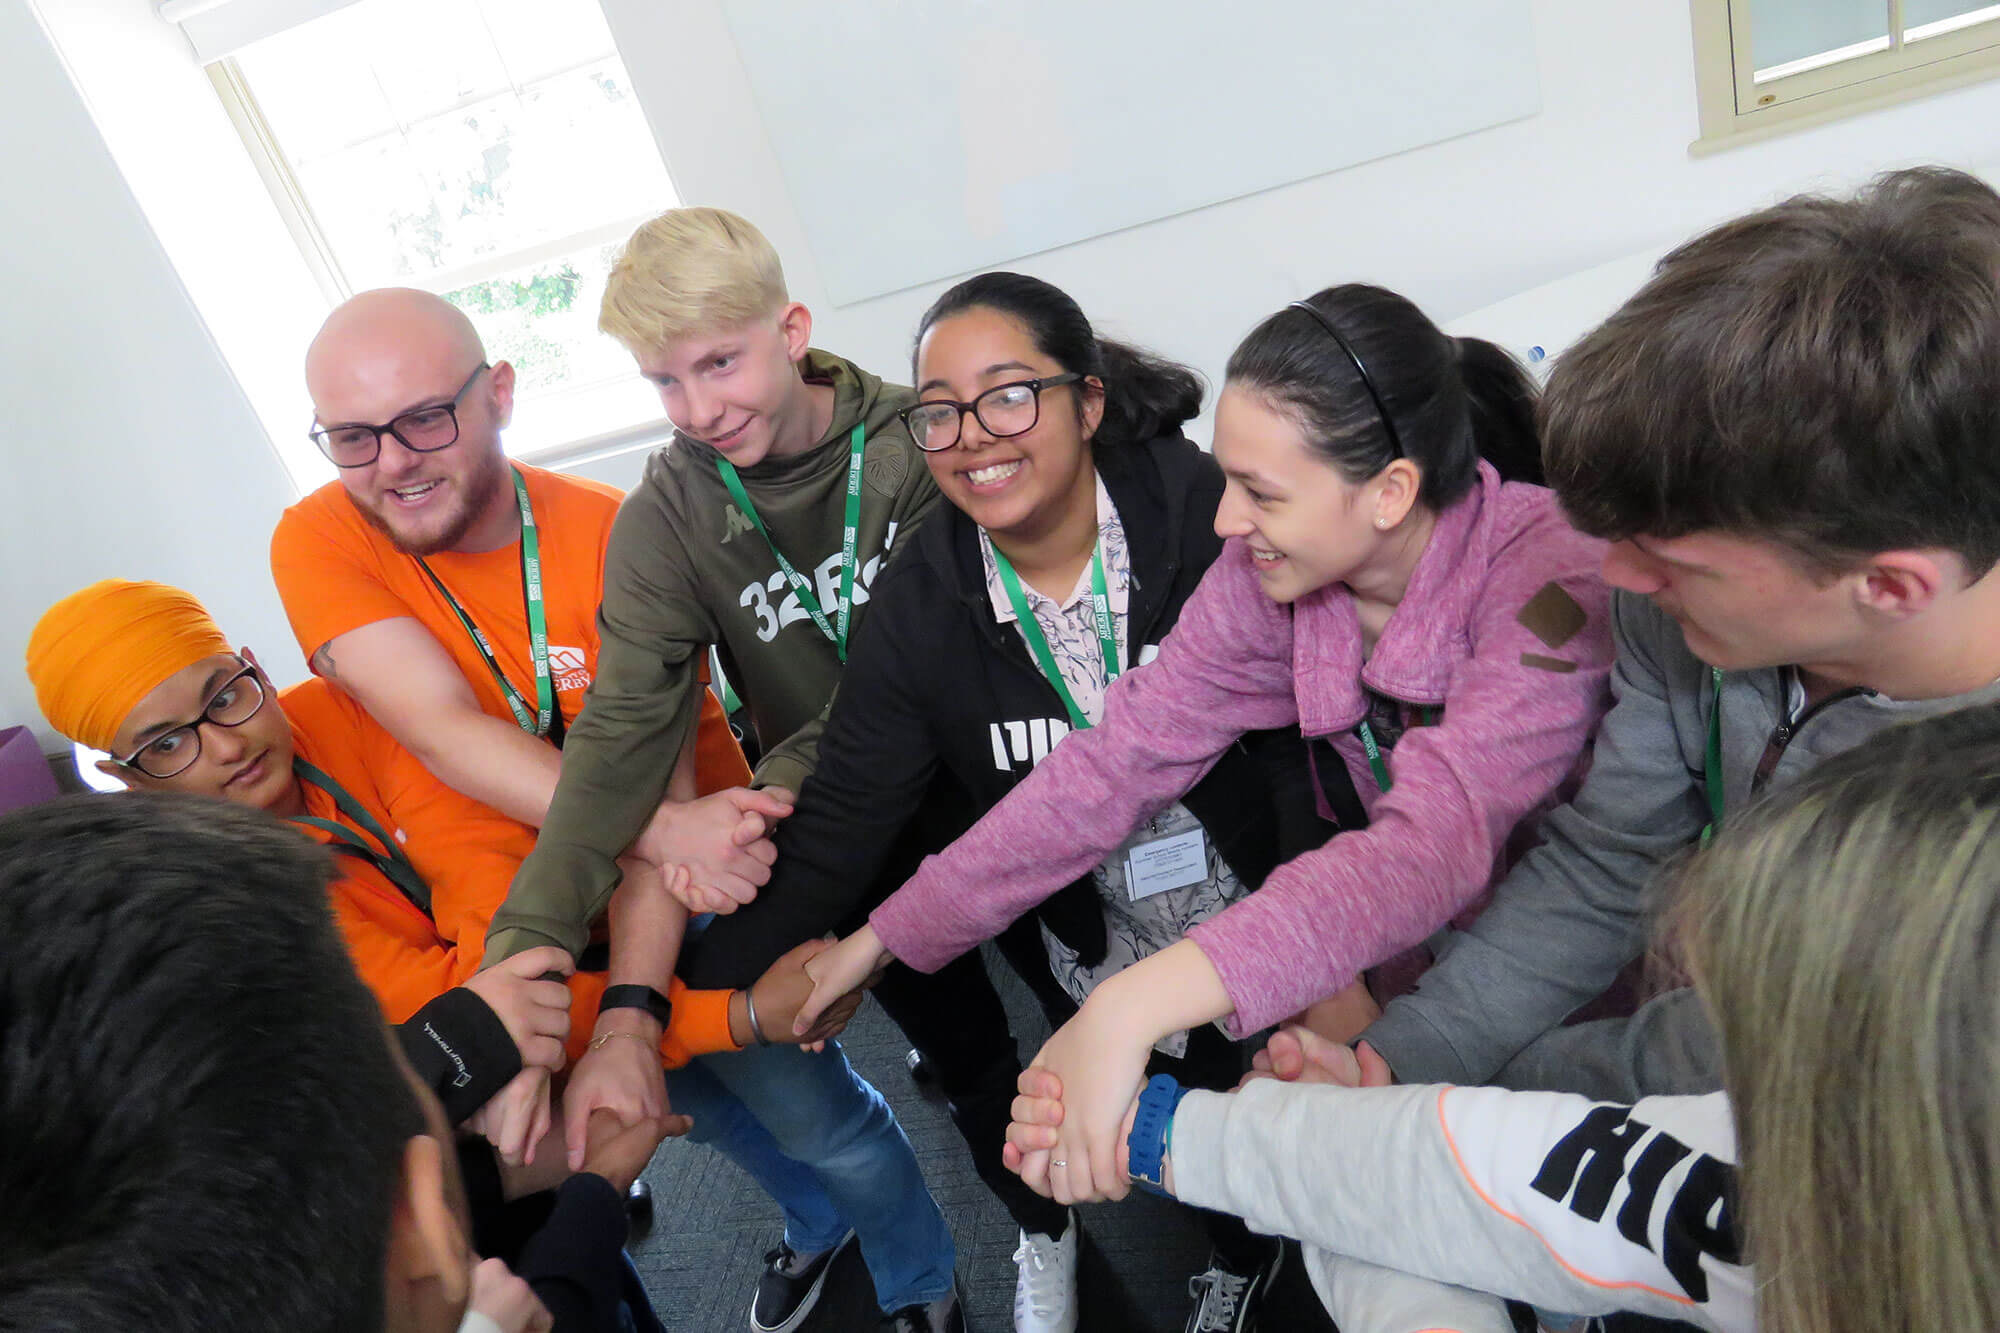 Students and Student Ambassadors standing in a circle and interlocking hands at Summer School 2019